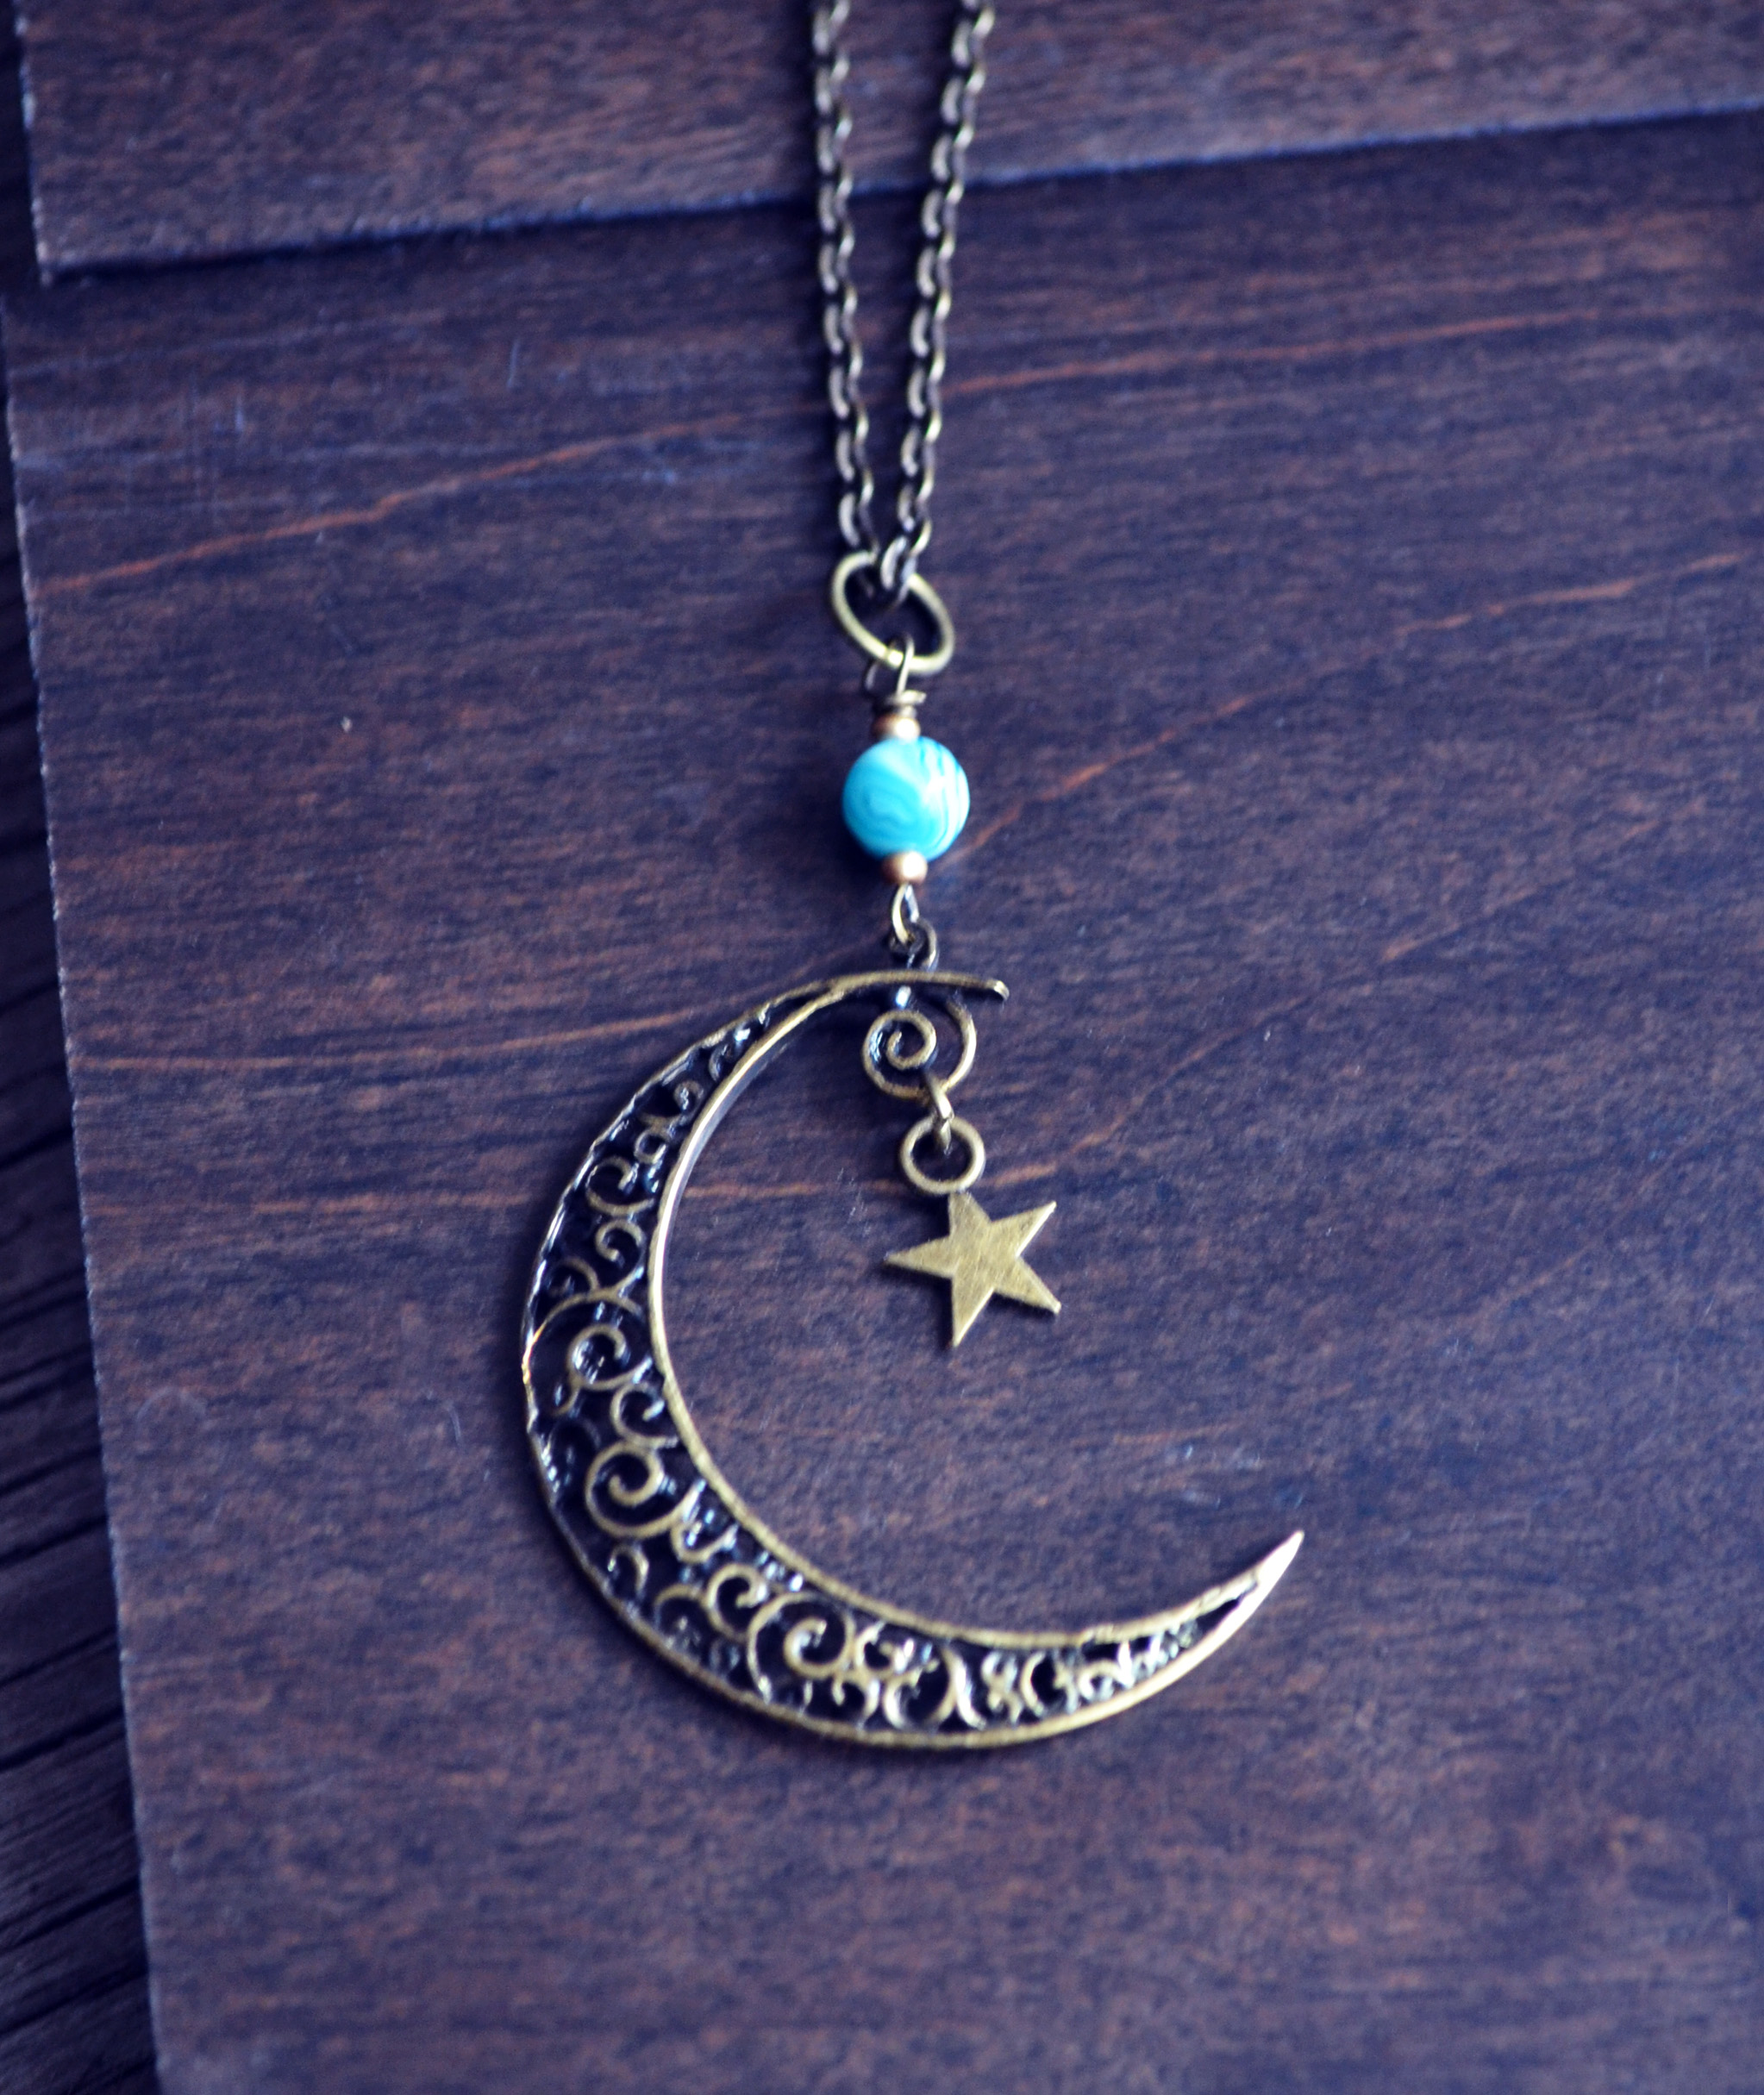 Mystical moon necklace crescent moon and star necklace fauna and mystical moon necklace crescent moon and star necklace thumbnail 1 mozeypictures Gallery